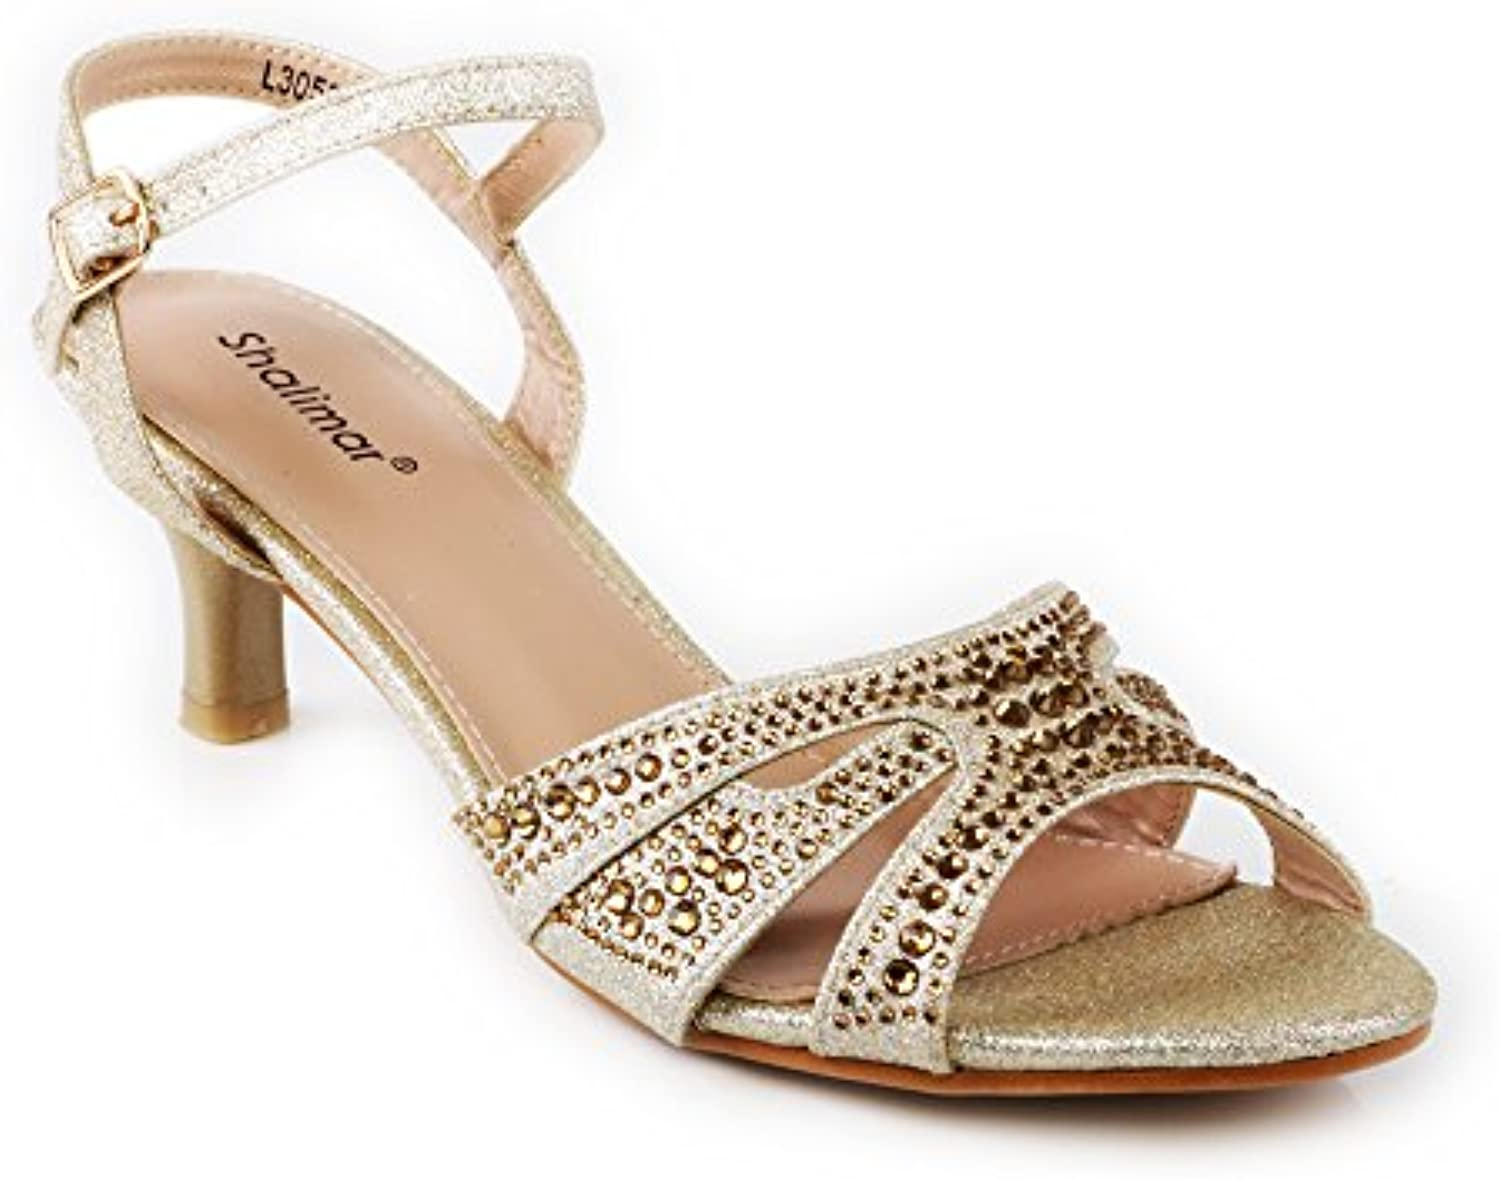 61b9d4a7371 Womens nhta-29975 Ladies Evening Shoes Kitten Heel Open Open Silver... Toe  Buckled Everyday Casual Comfortable Sandals (Gold